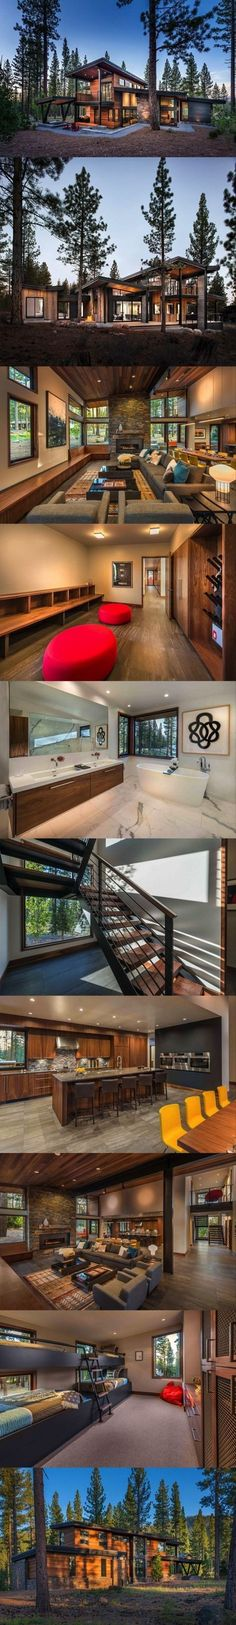 Interesting roof lines Container House - Chalet Who Else Wants Simple Step-By-Step Plans To Design And Build A Container Home From Scratch? Building A Container Home, Container House Design, Chalet Modern, Modern Cabins, Modern Cottage, Casas Containers, Shipping Container Homes, Shipping Containers, House Goals